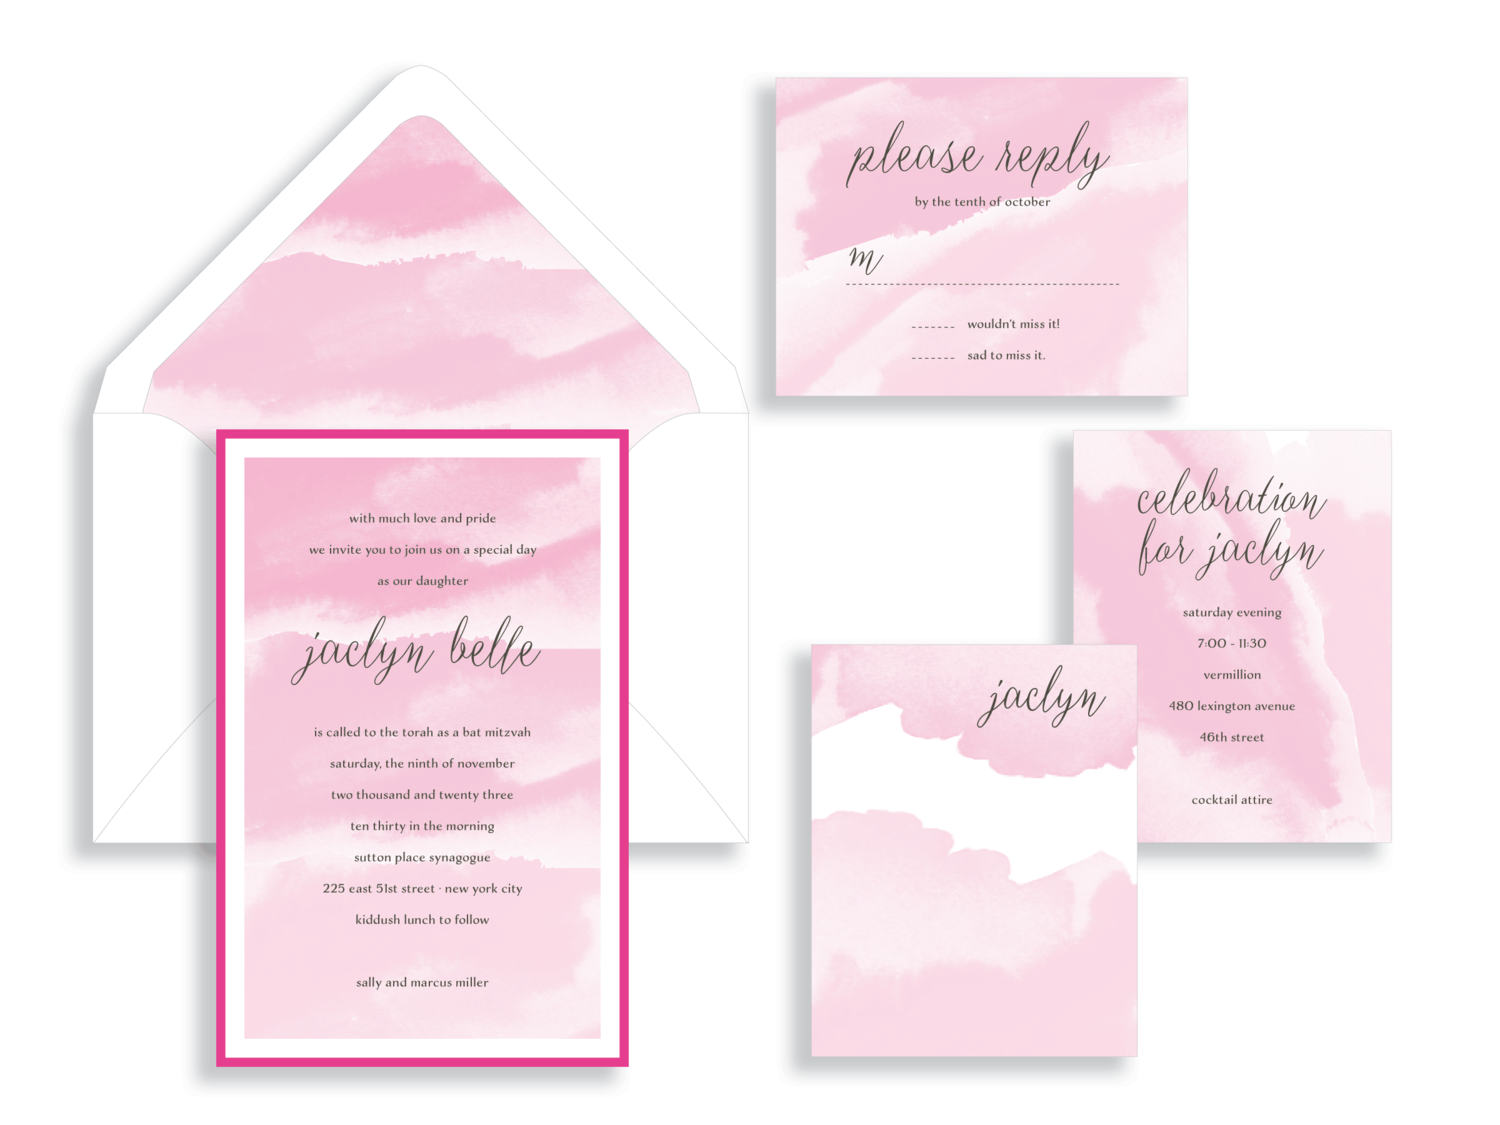 Jaclyn Belle watercolor Bat Mitzvah invitation in pink.  Bat Mitzvah invitations Northern Virginia Fairfax.